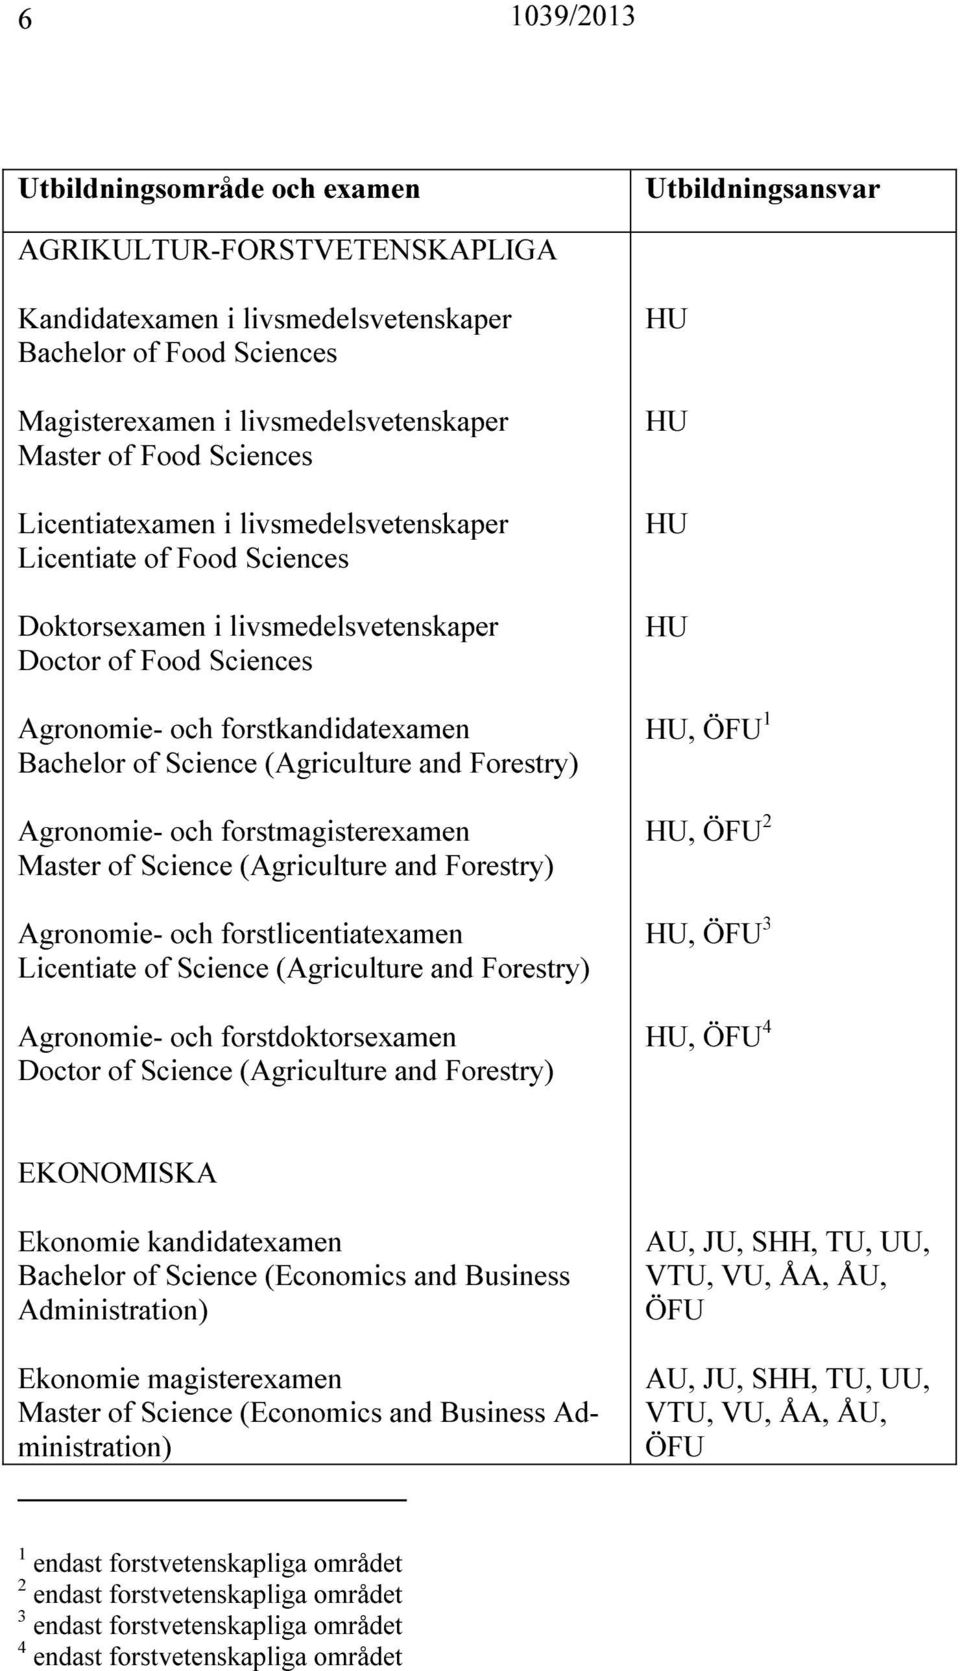 Agronomie- och forstmagisterexamen Master of Science (Agriculture and Forestry) Agronomie- och forstlicentiatexamen Licentiate of Science (Agriculture and Forestry) Agronomie- och forstdoktorsexamen